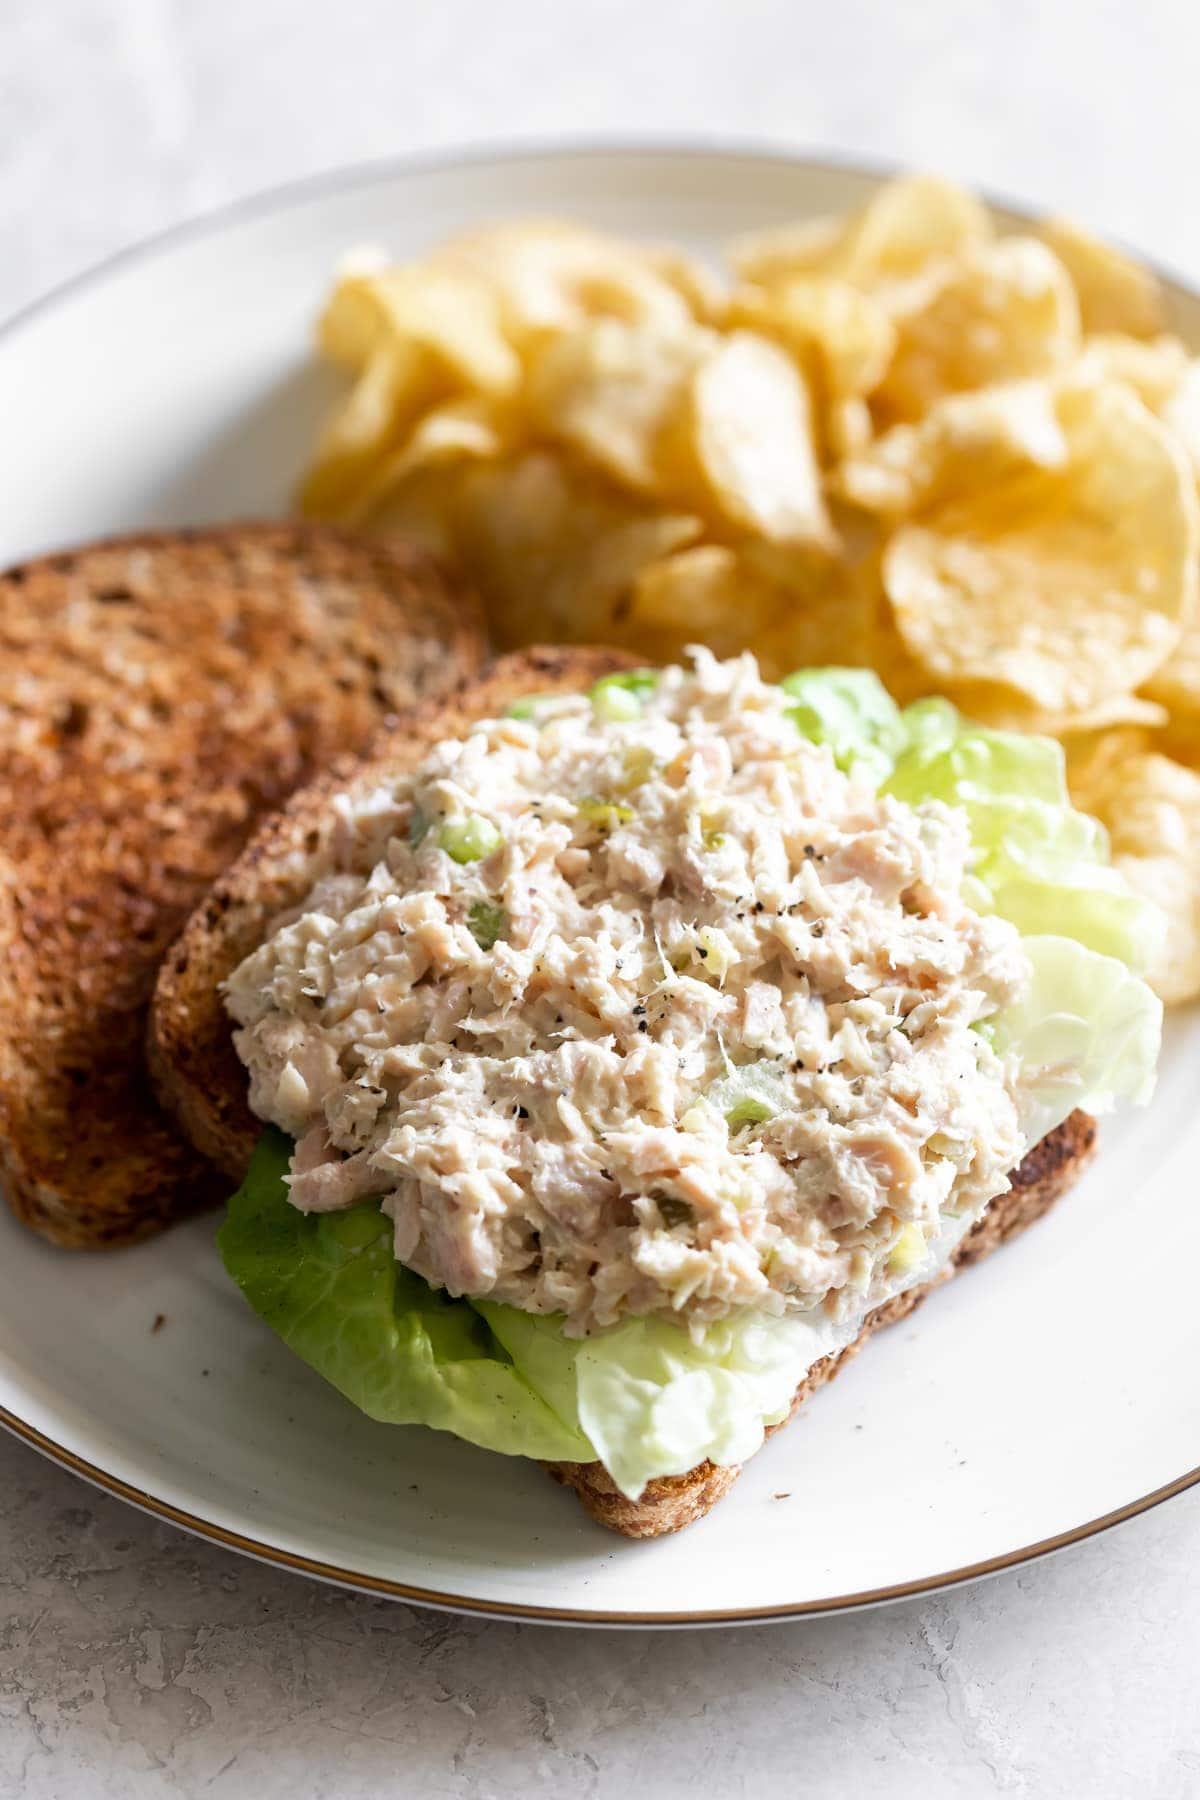 tuna salad sandwich on boston lettuce with chips on a white plate